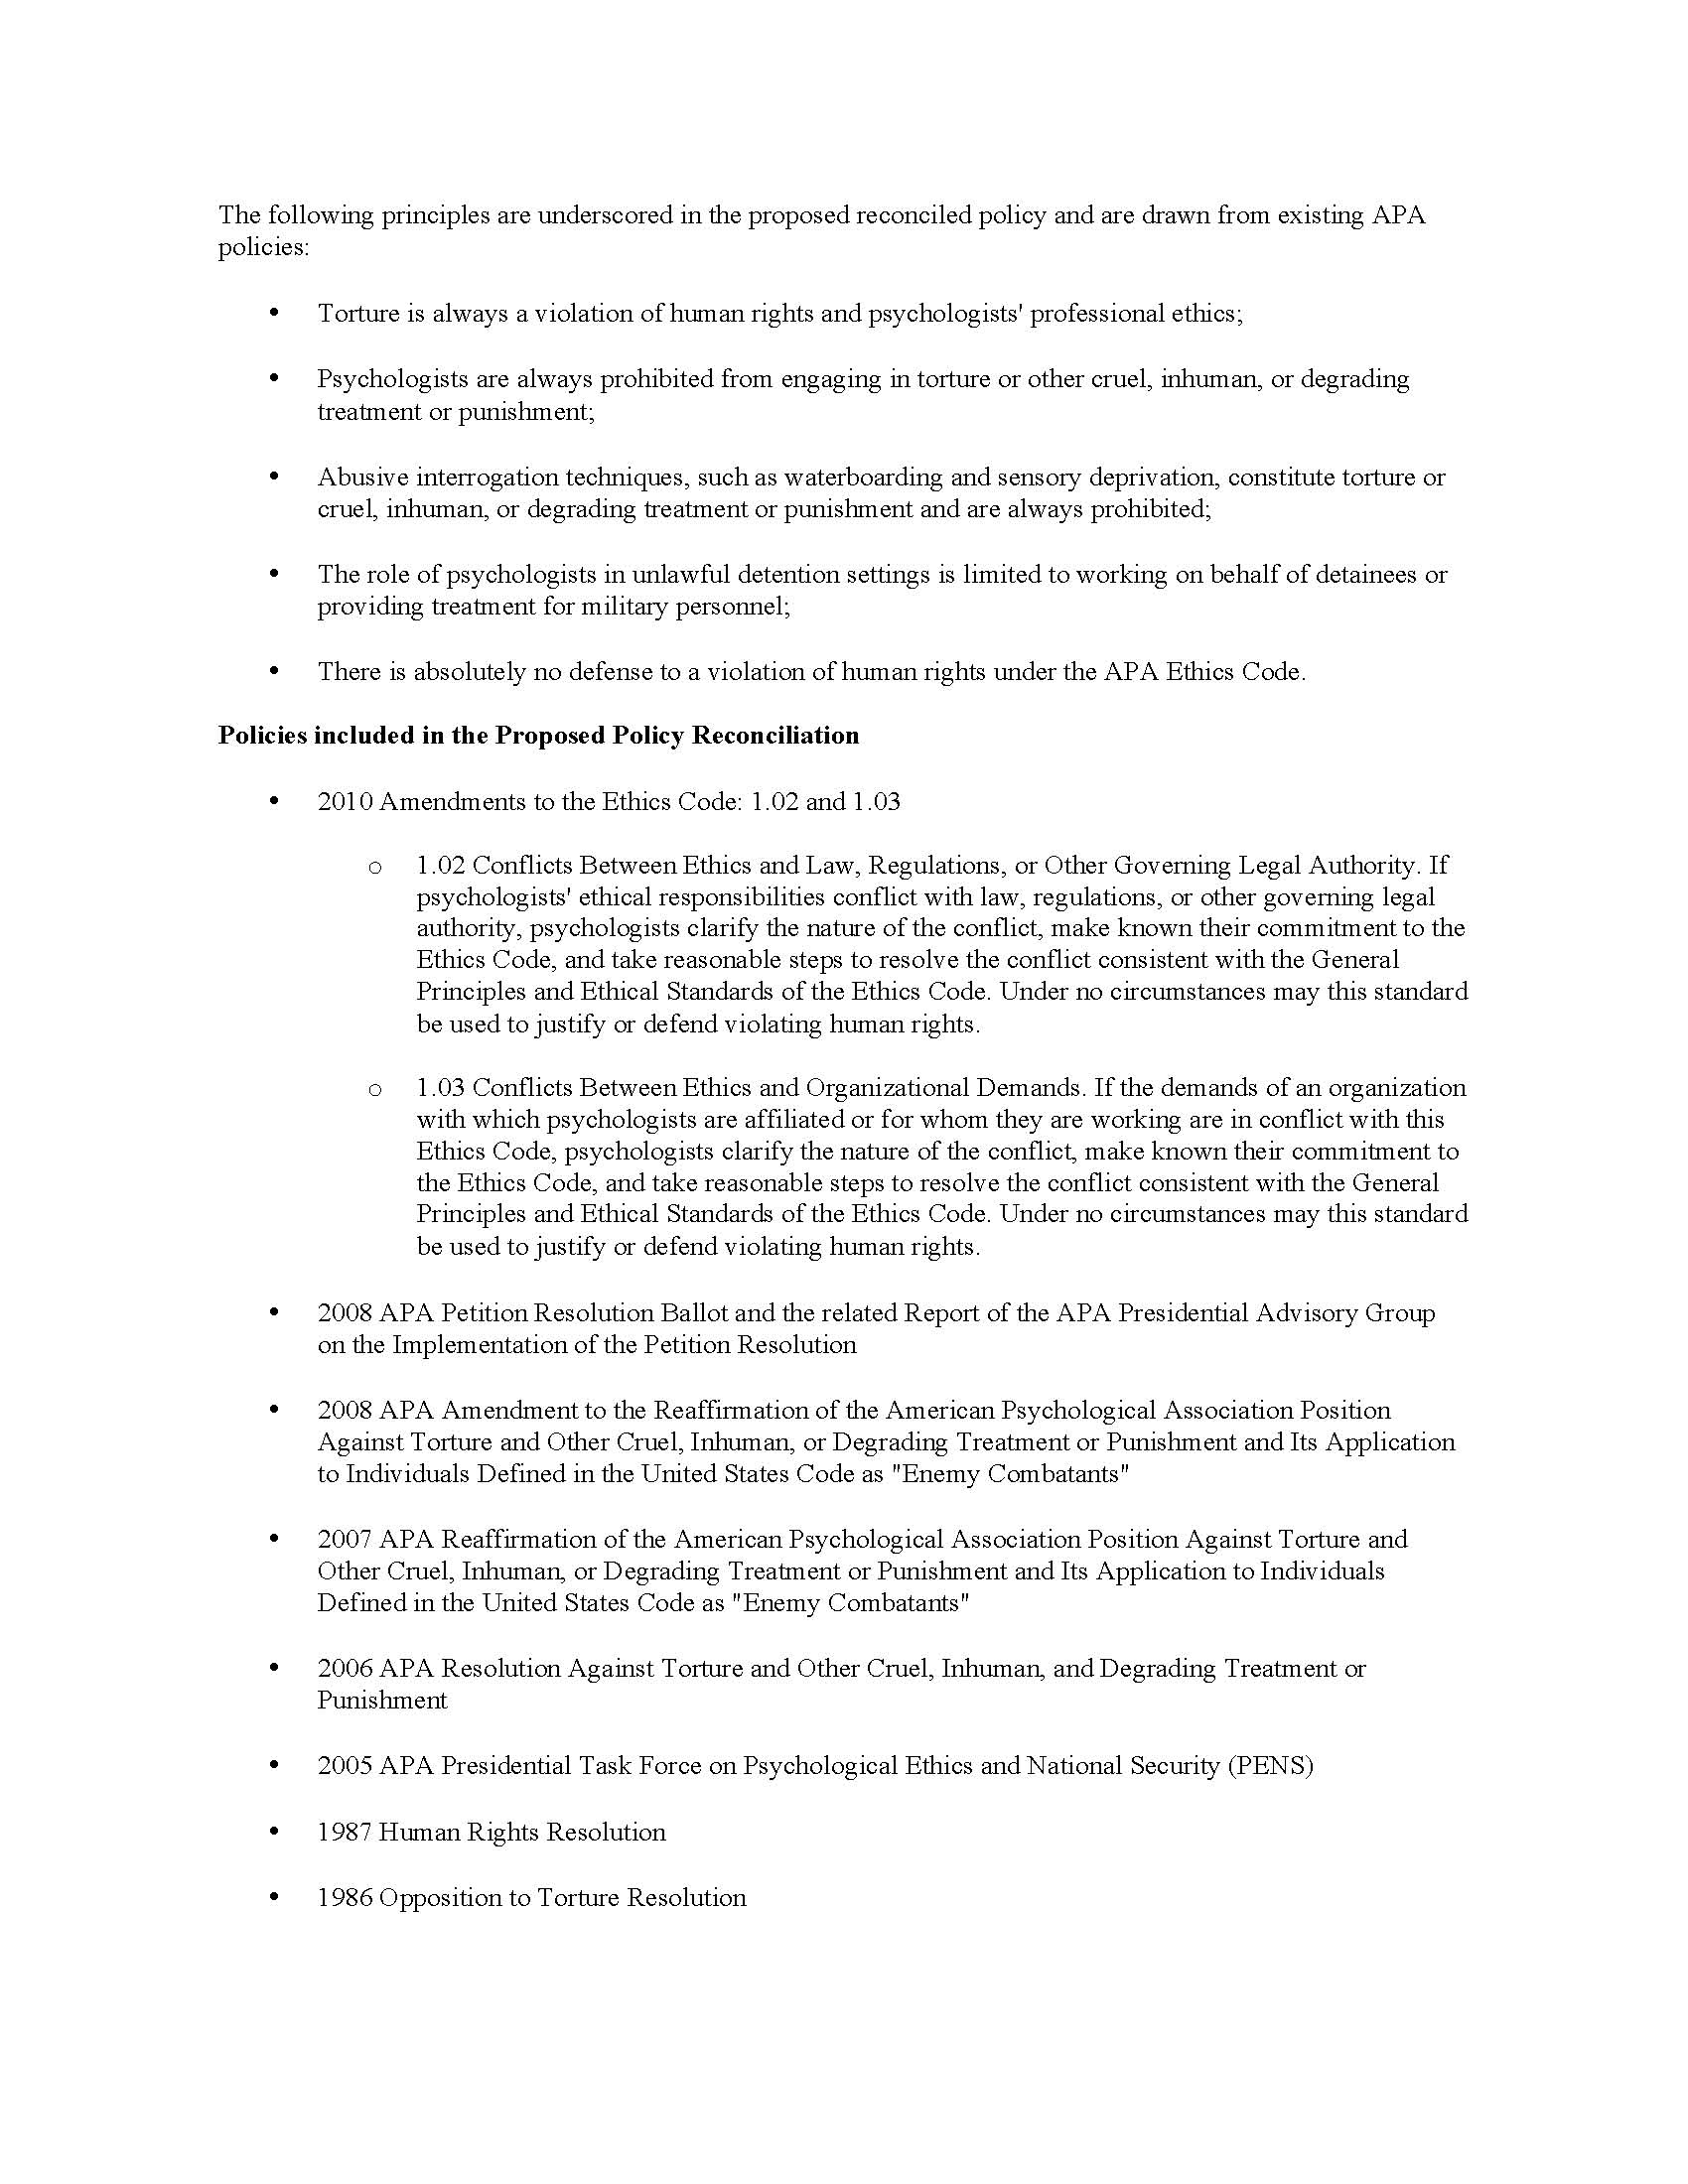 reconciledpolicyfinalreport feb 2013 page 03 jpg report of the apa member initiated task force to reconcile apa policies related to psychologists work in national security settings